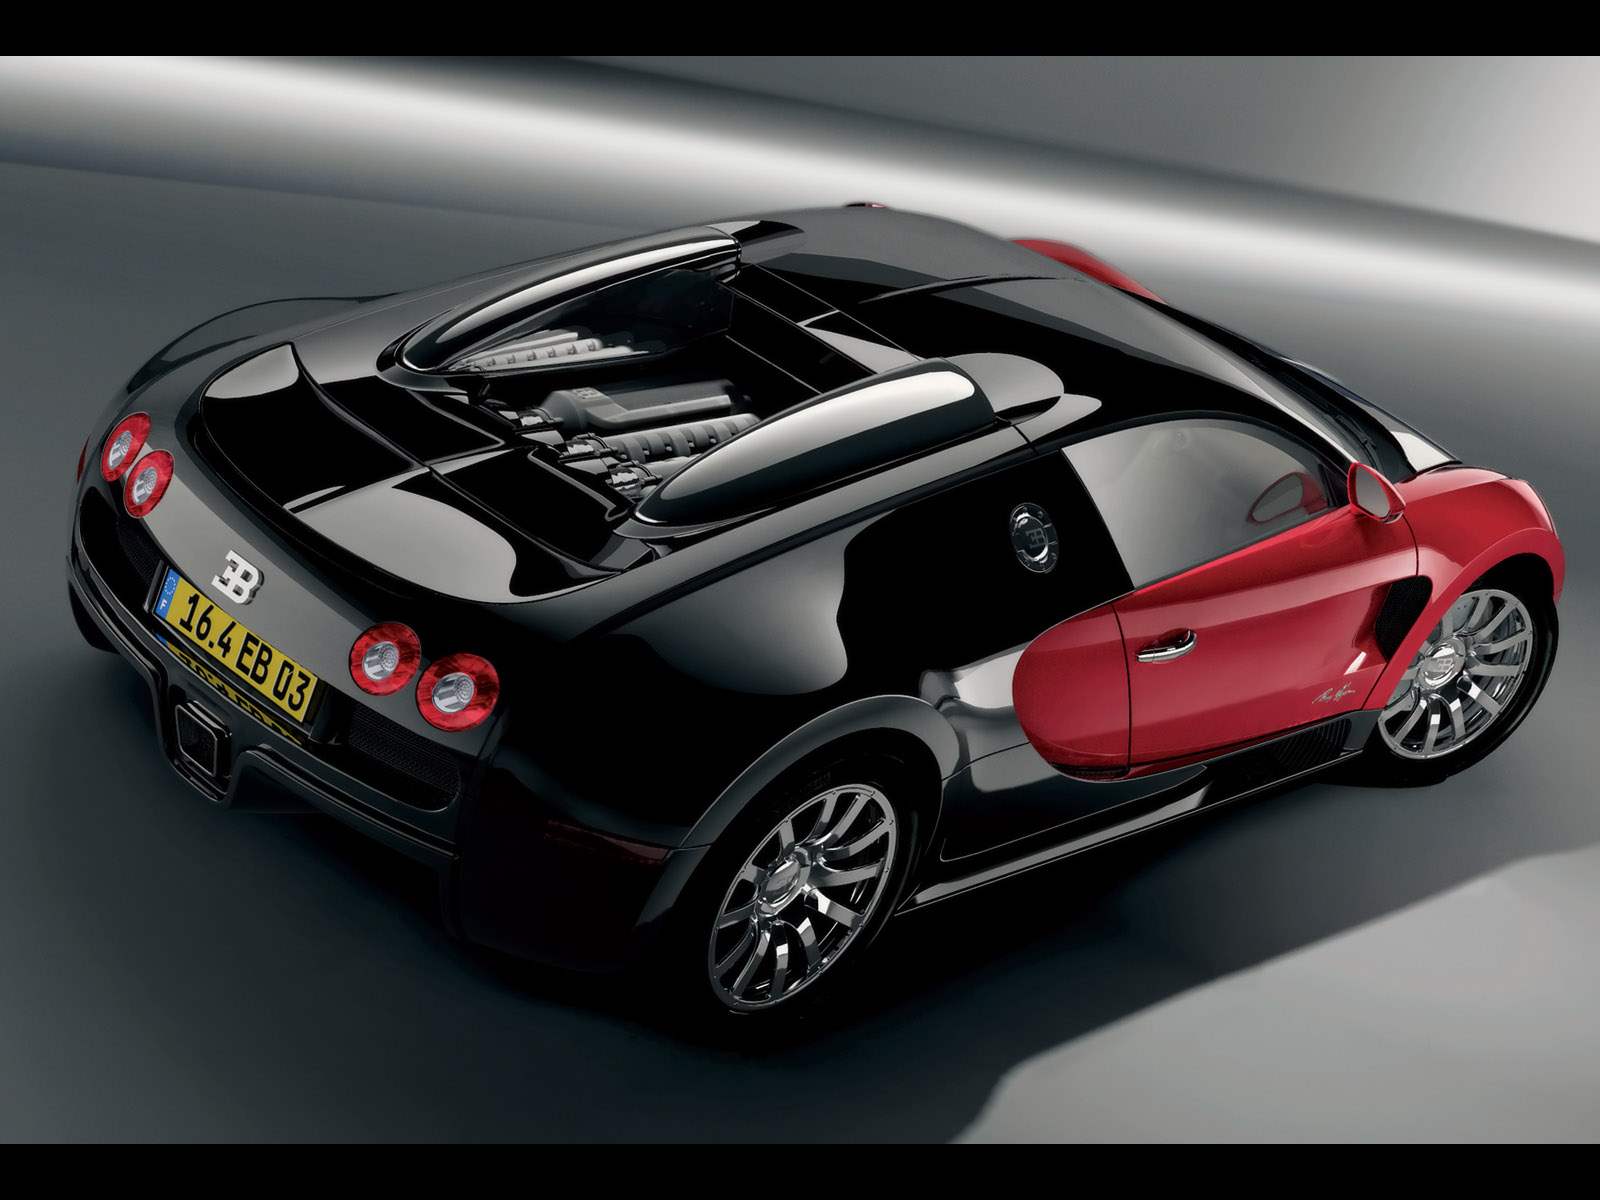 Avenger blog Bugatti Veyron Wallpaper 1600x1200